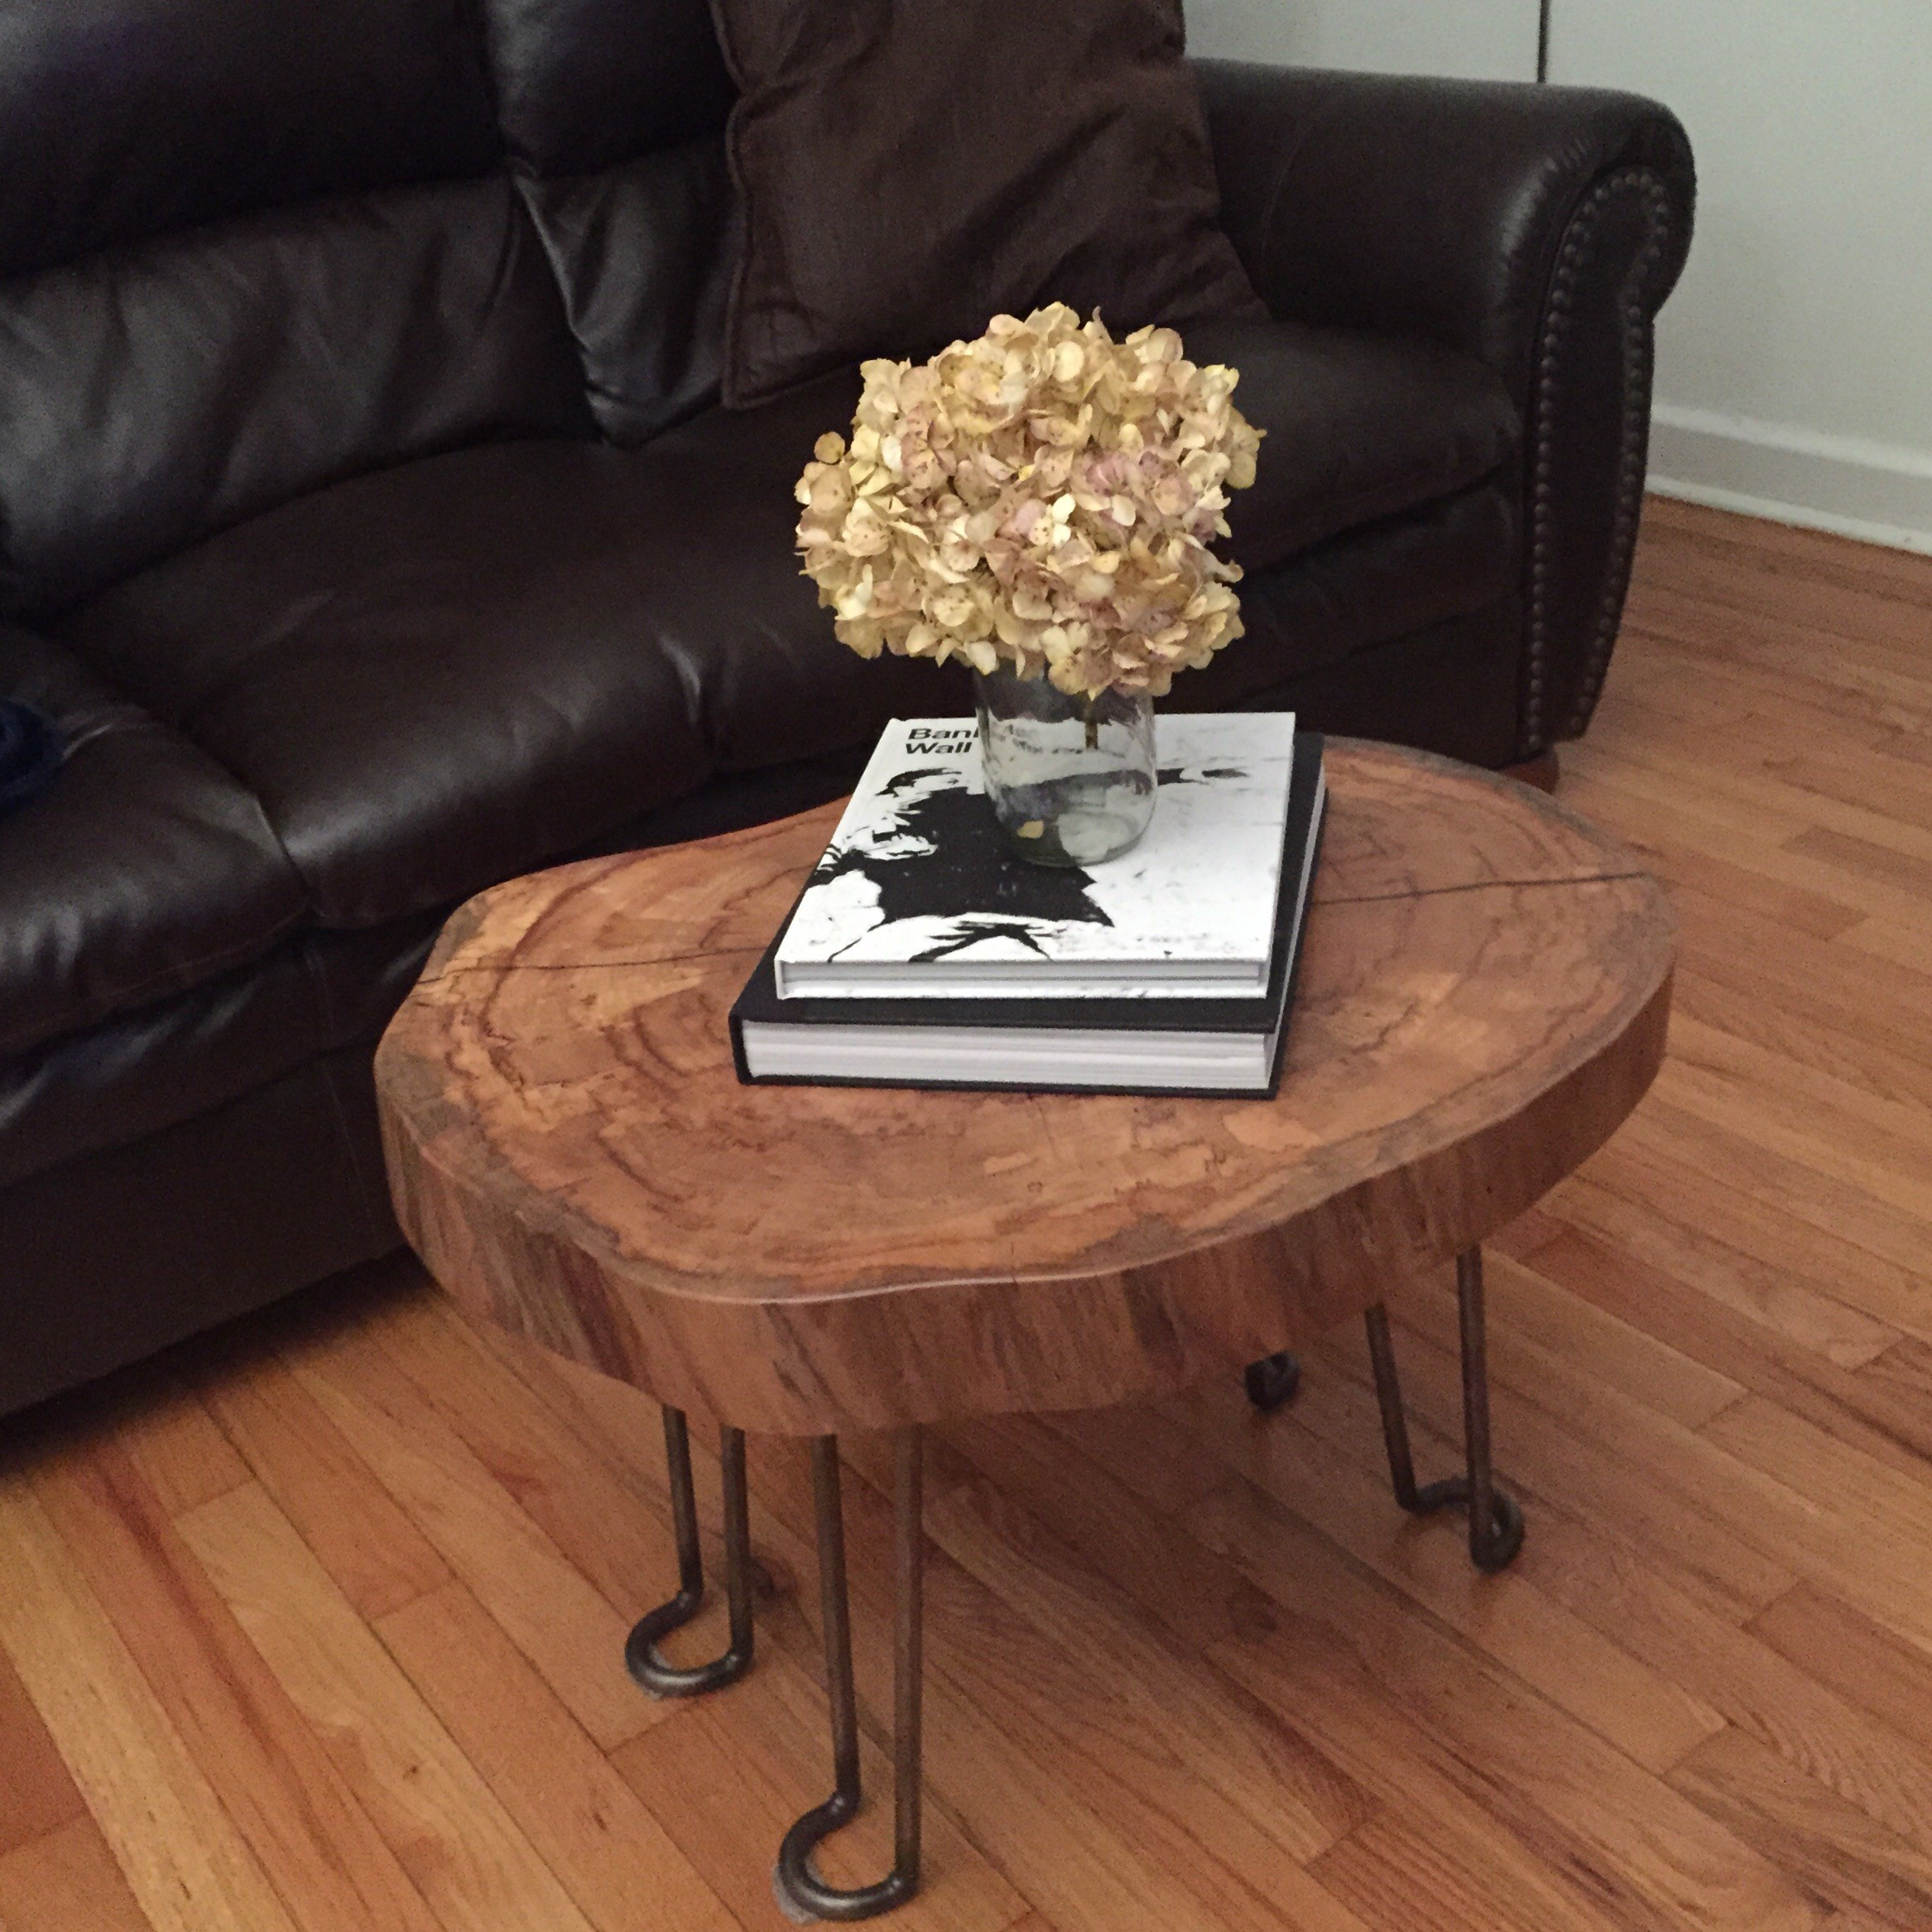 coffee tables ideas outstanding wood log table inspiration plant sample wooden brown magazine books pot flower prodigious adorable and end whalen furniture vineyard dining